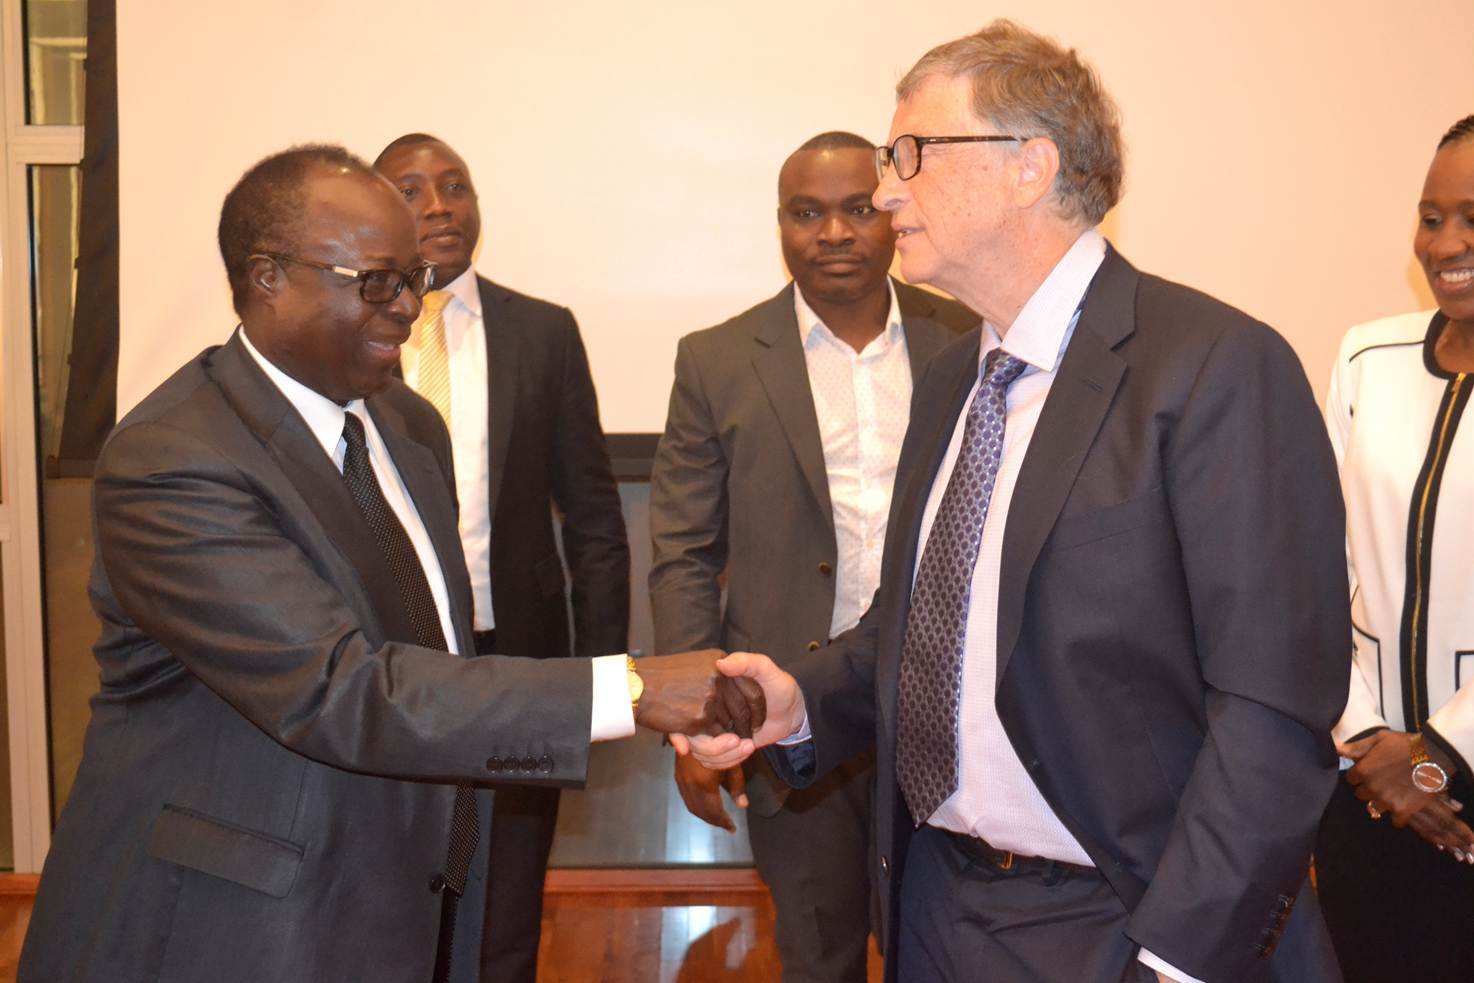 Bill Gates in Dar es Salaam this week to support financial inclusion